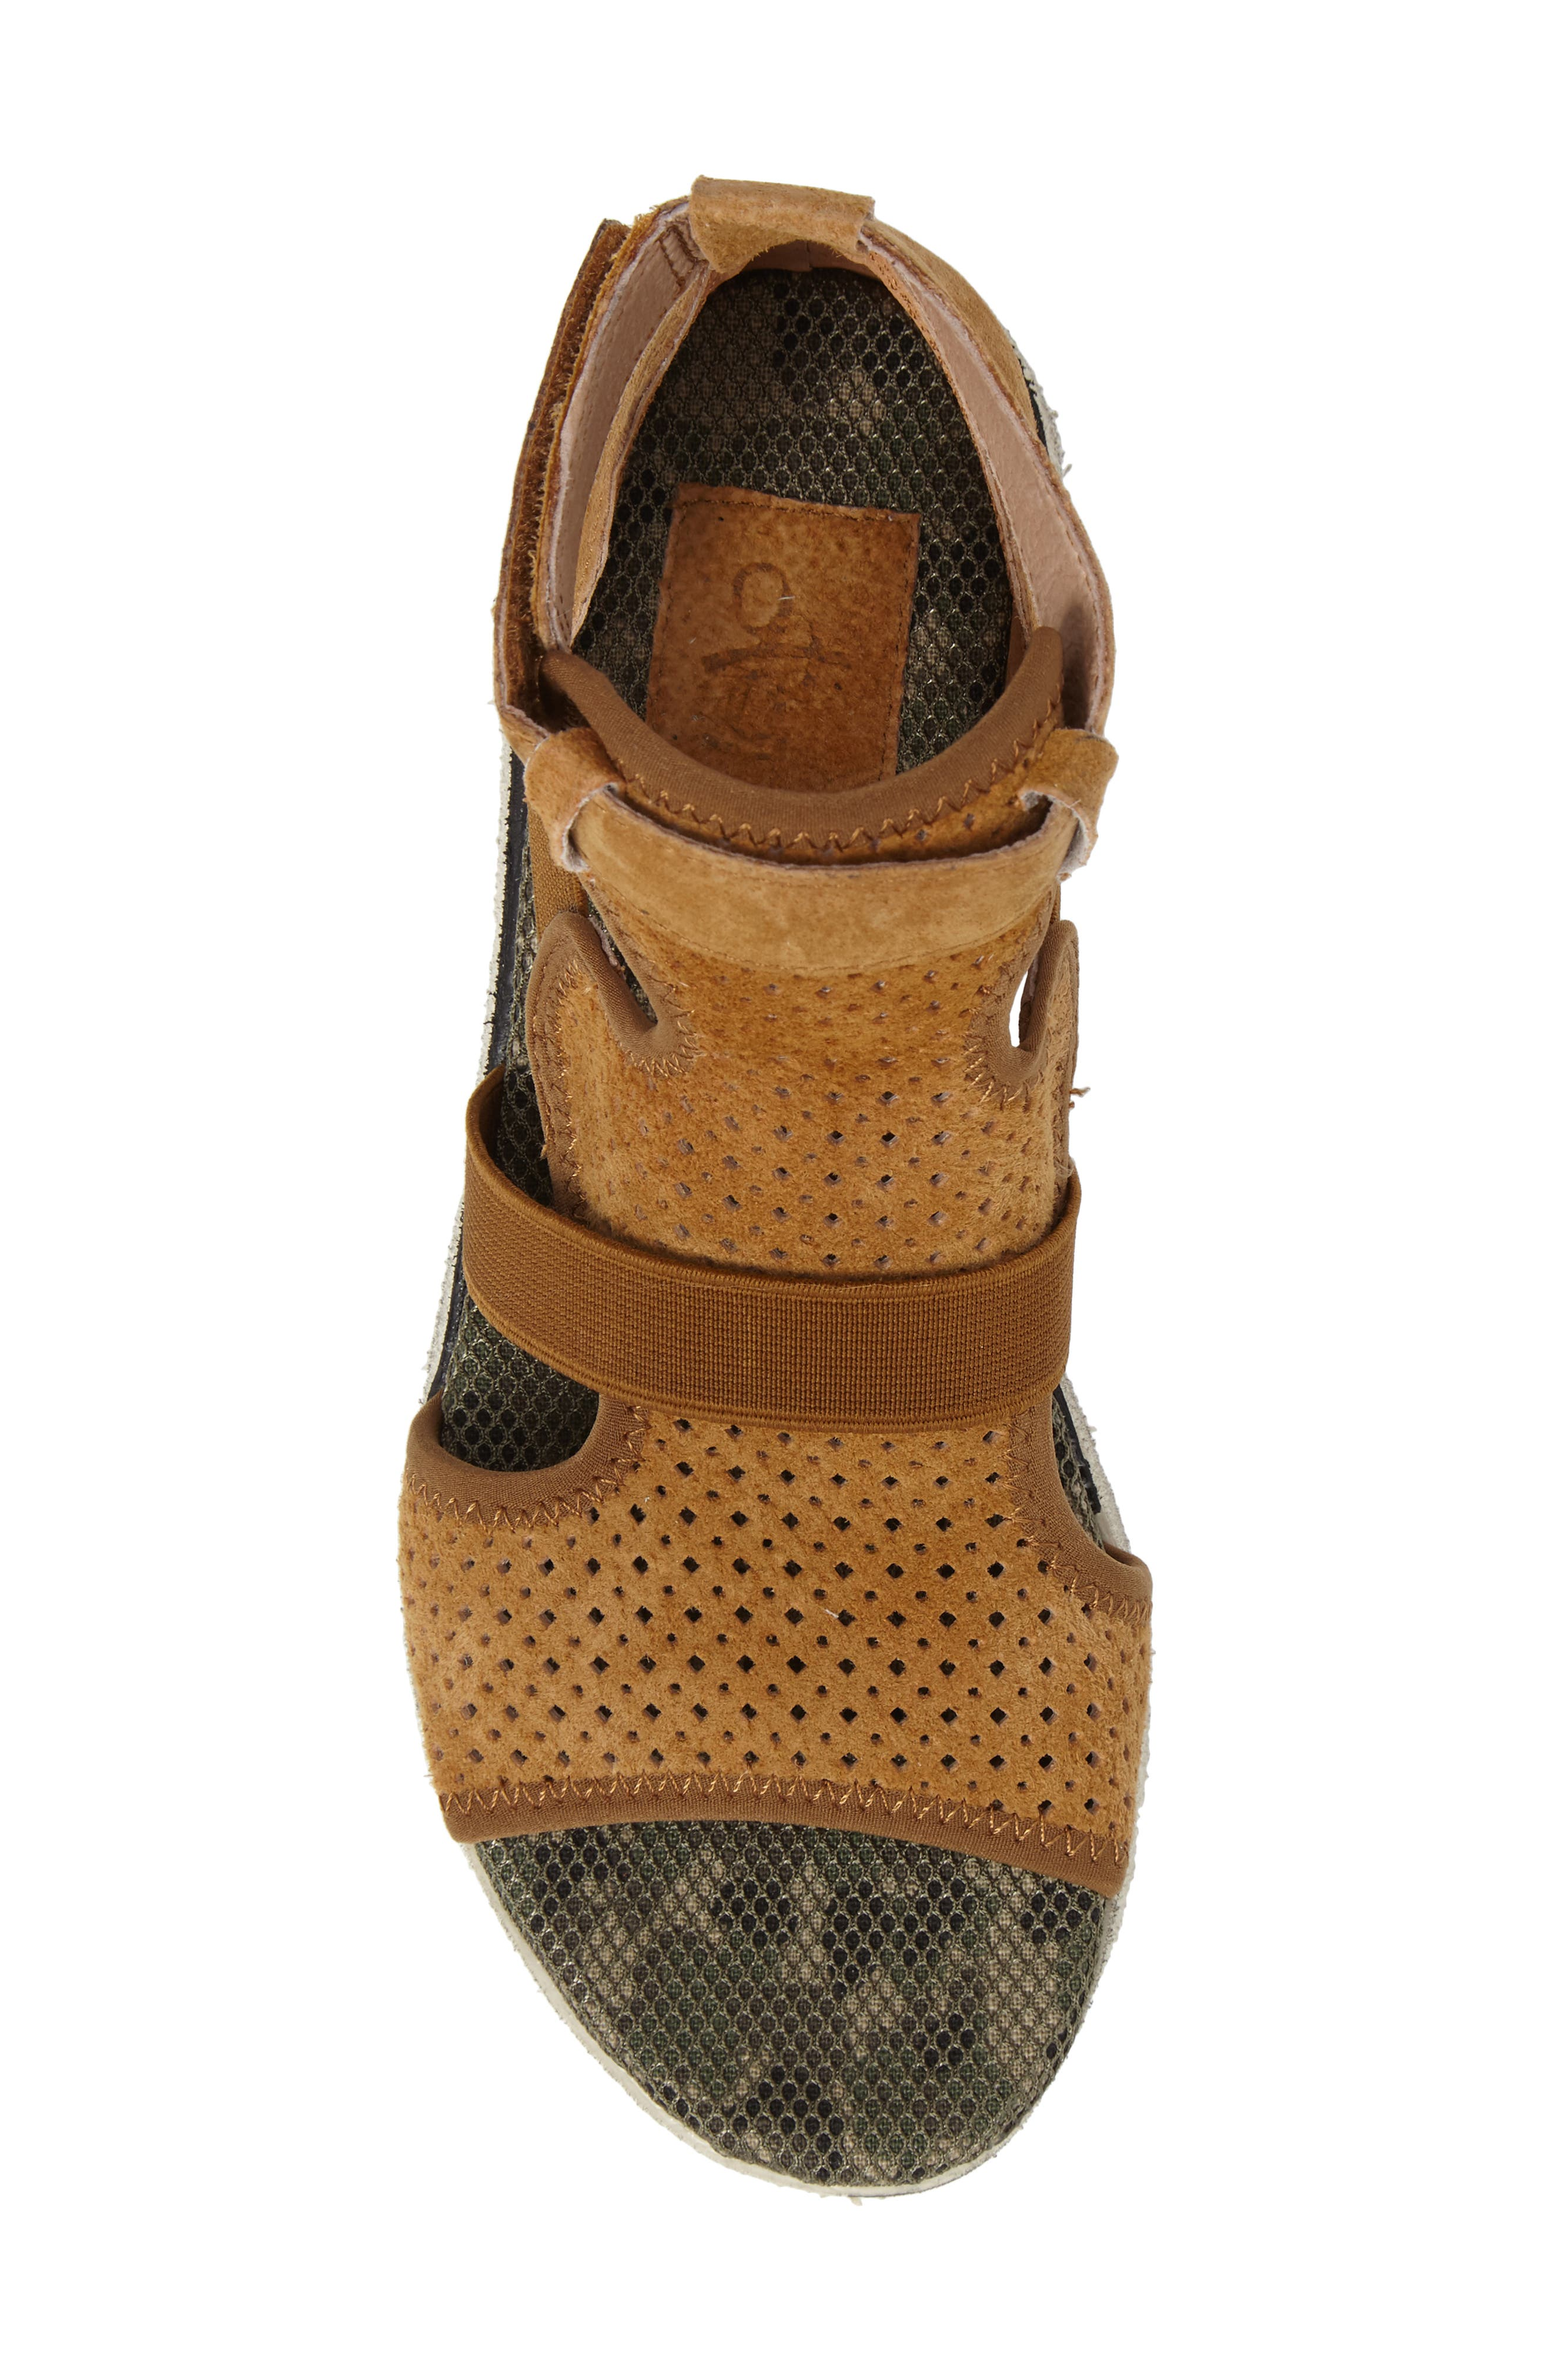 Astro Perforated Gladiator Sandal,                             Alternate thumbnail 15, color,